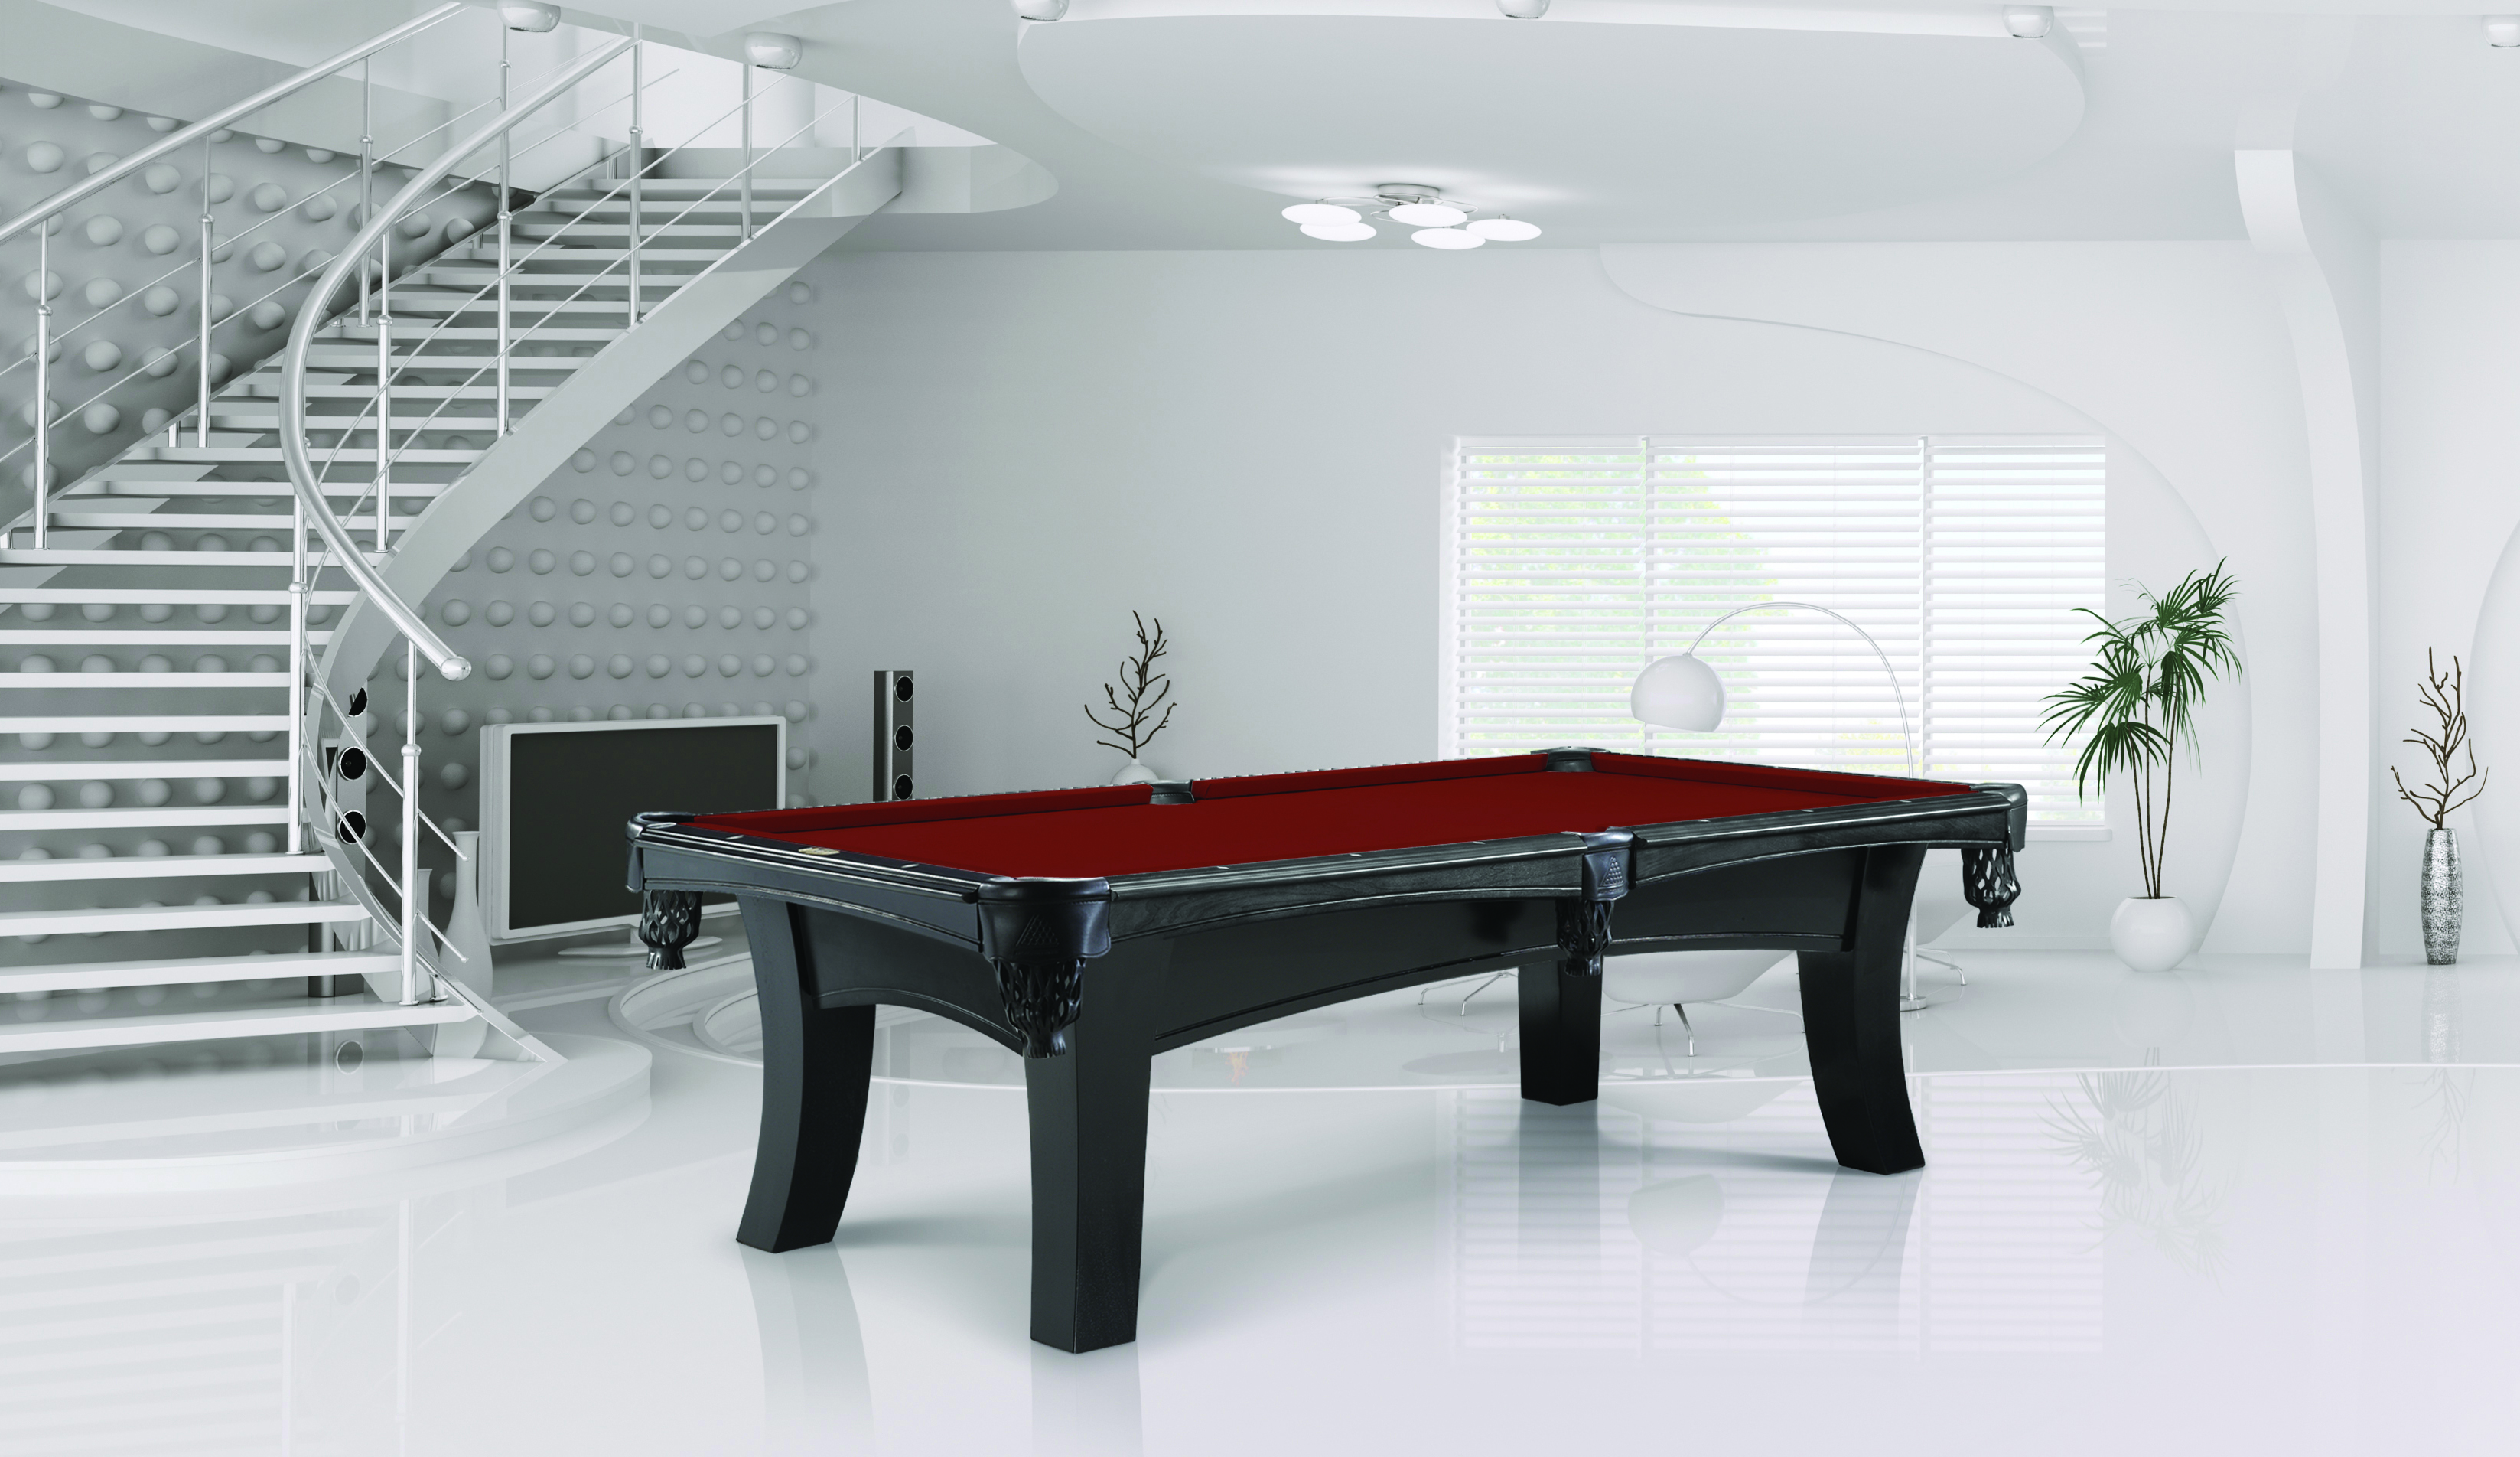 Pool Tables Archive Aurora Pool Spa And Billiard - Pool table movers knoxville tn